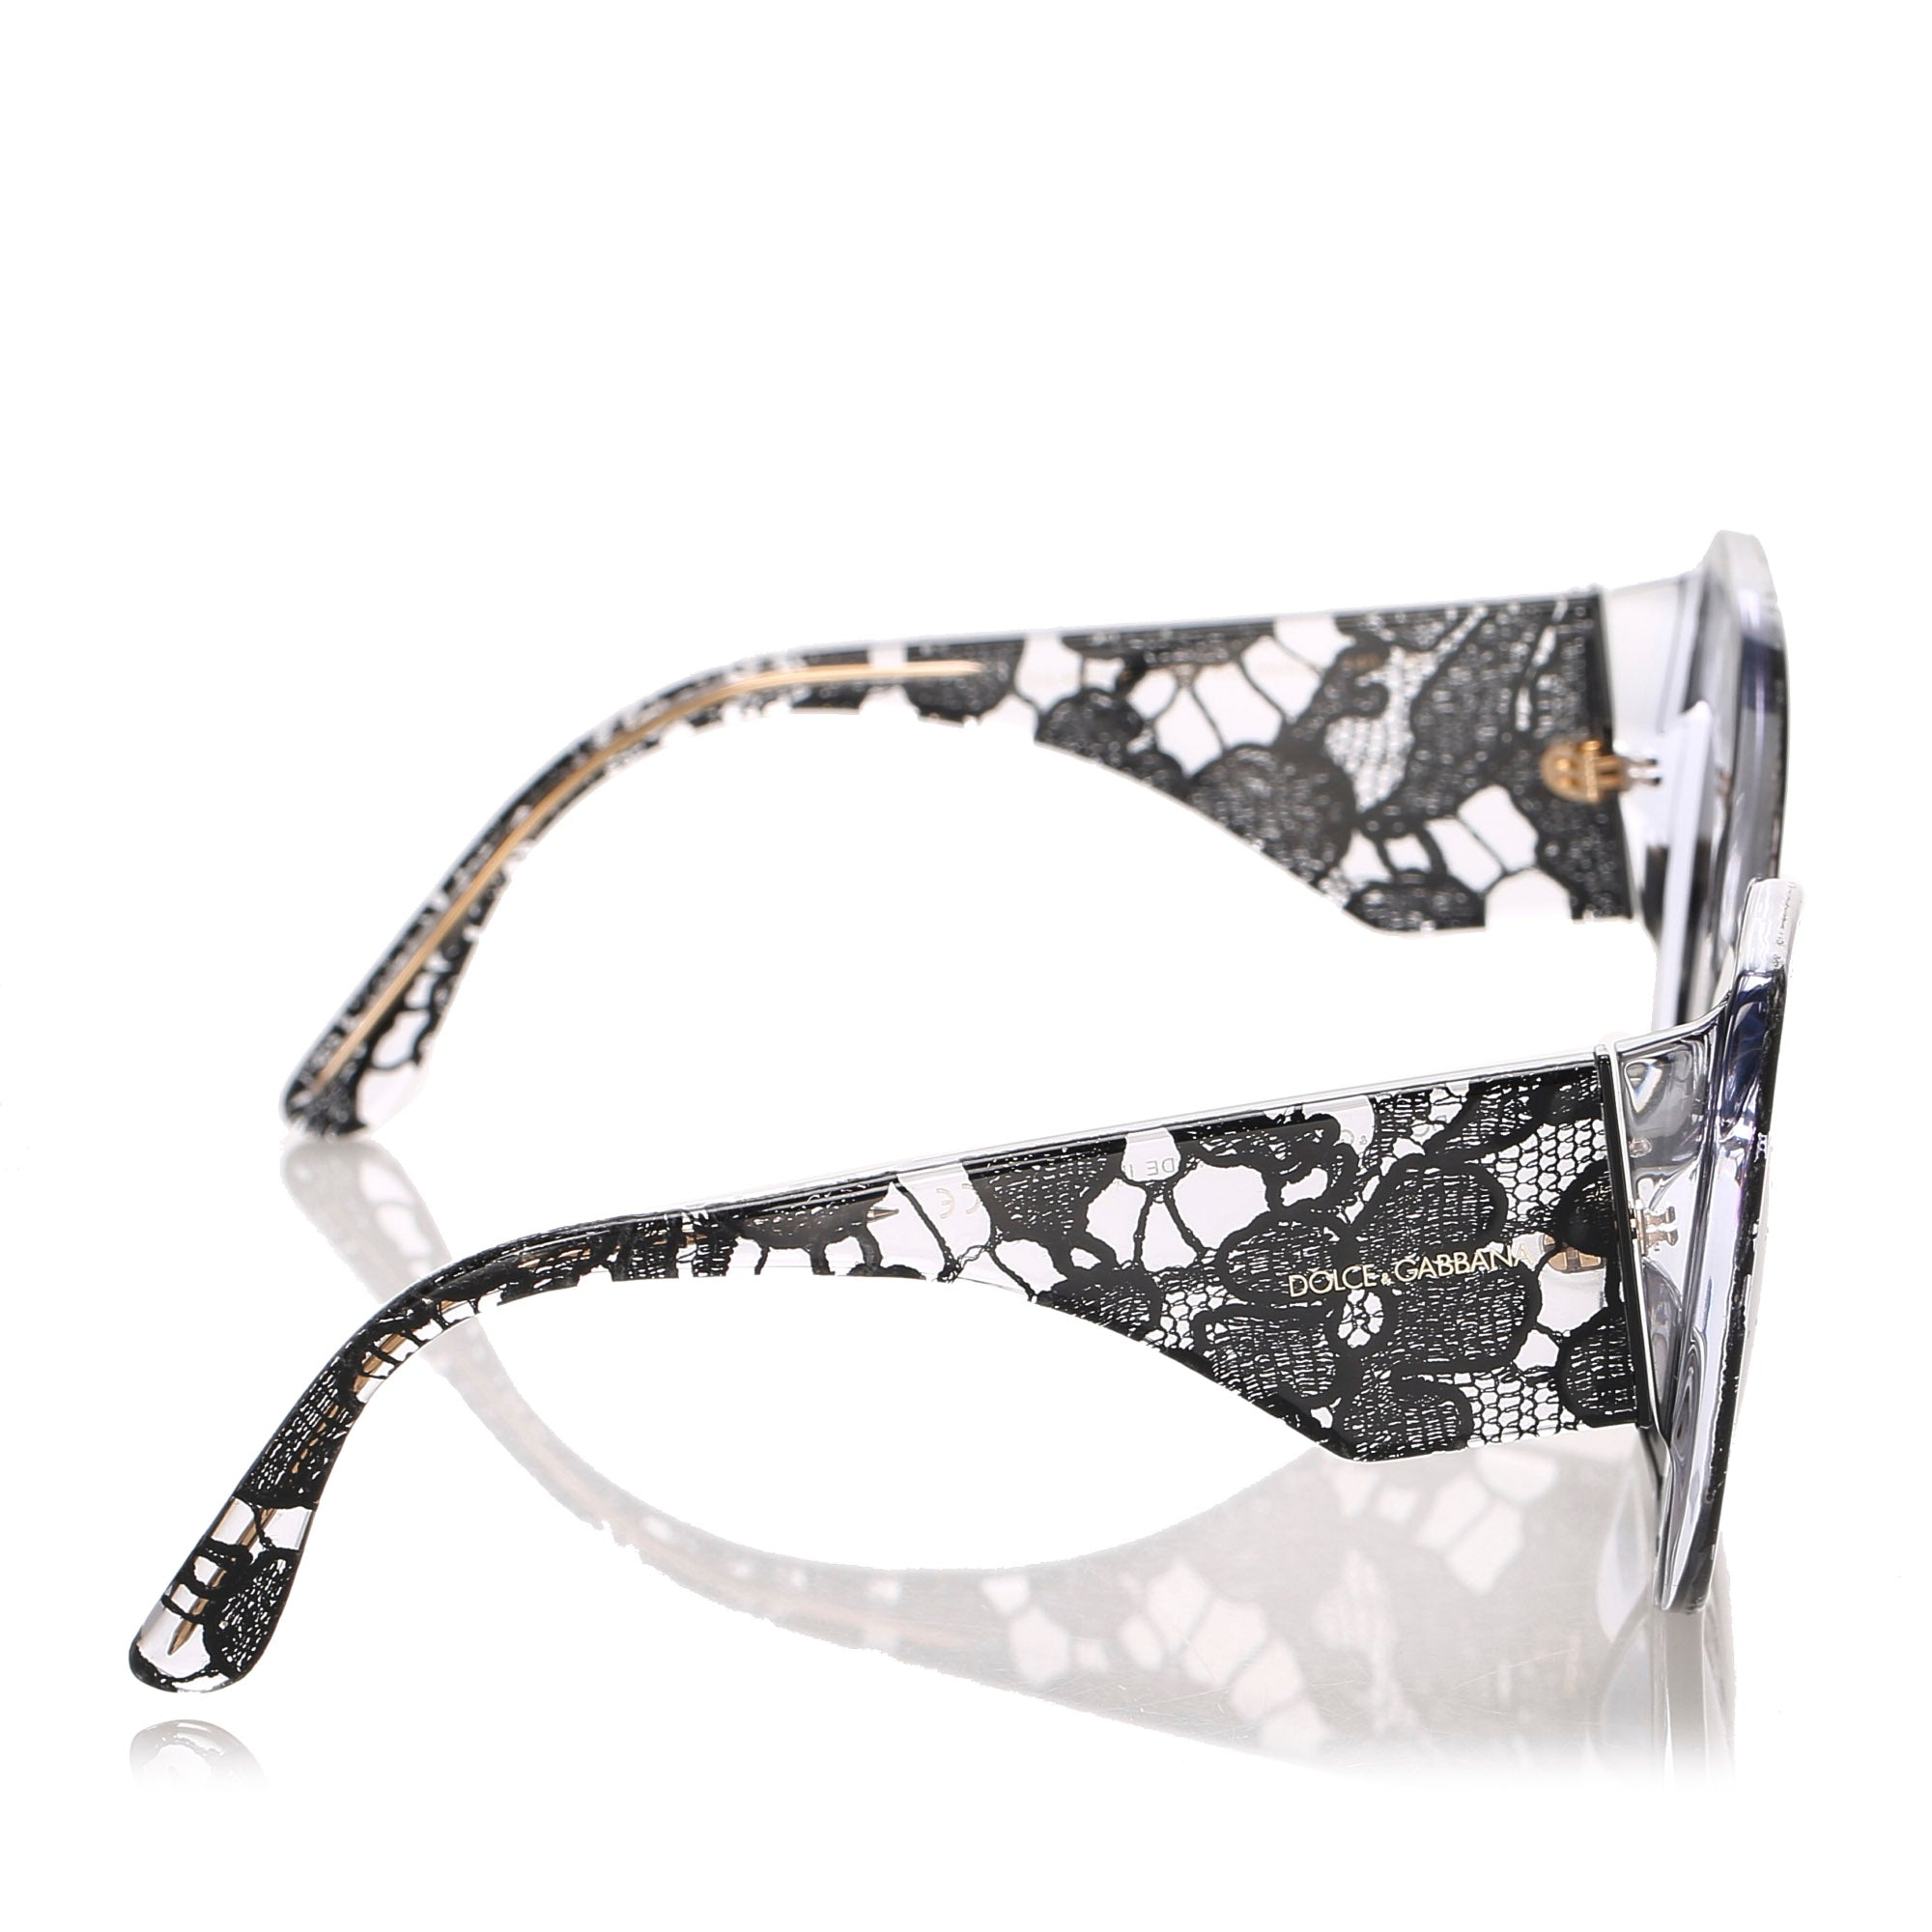 Dolce&Gabbana Black Lace Print Round Tinted Sunglasses